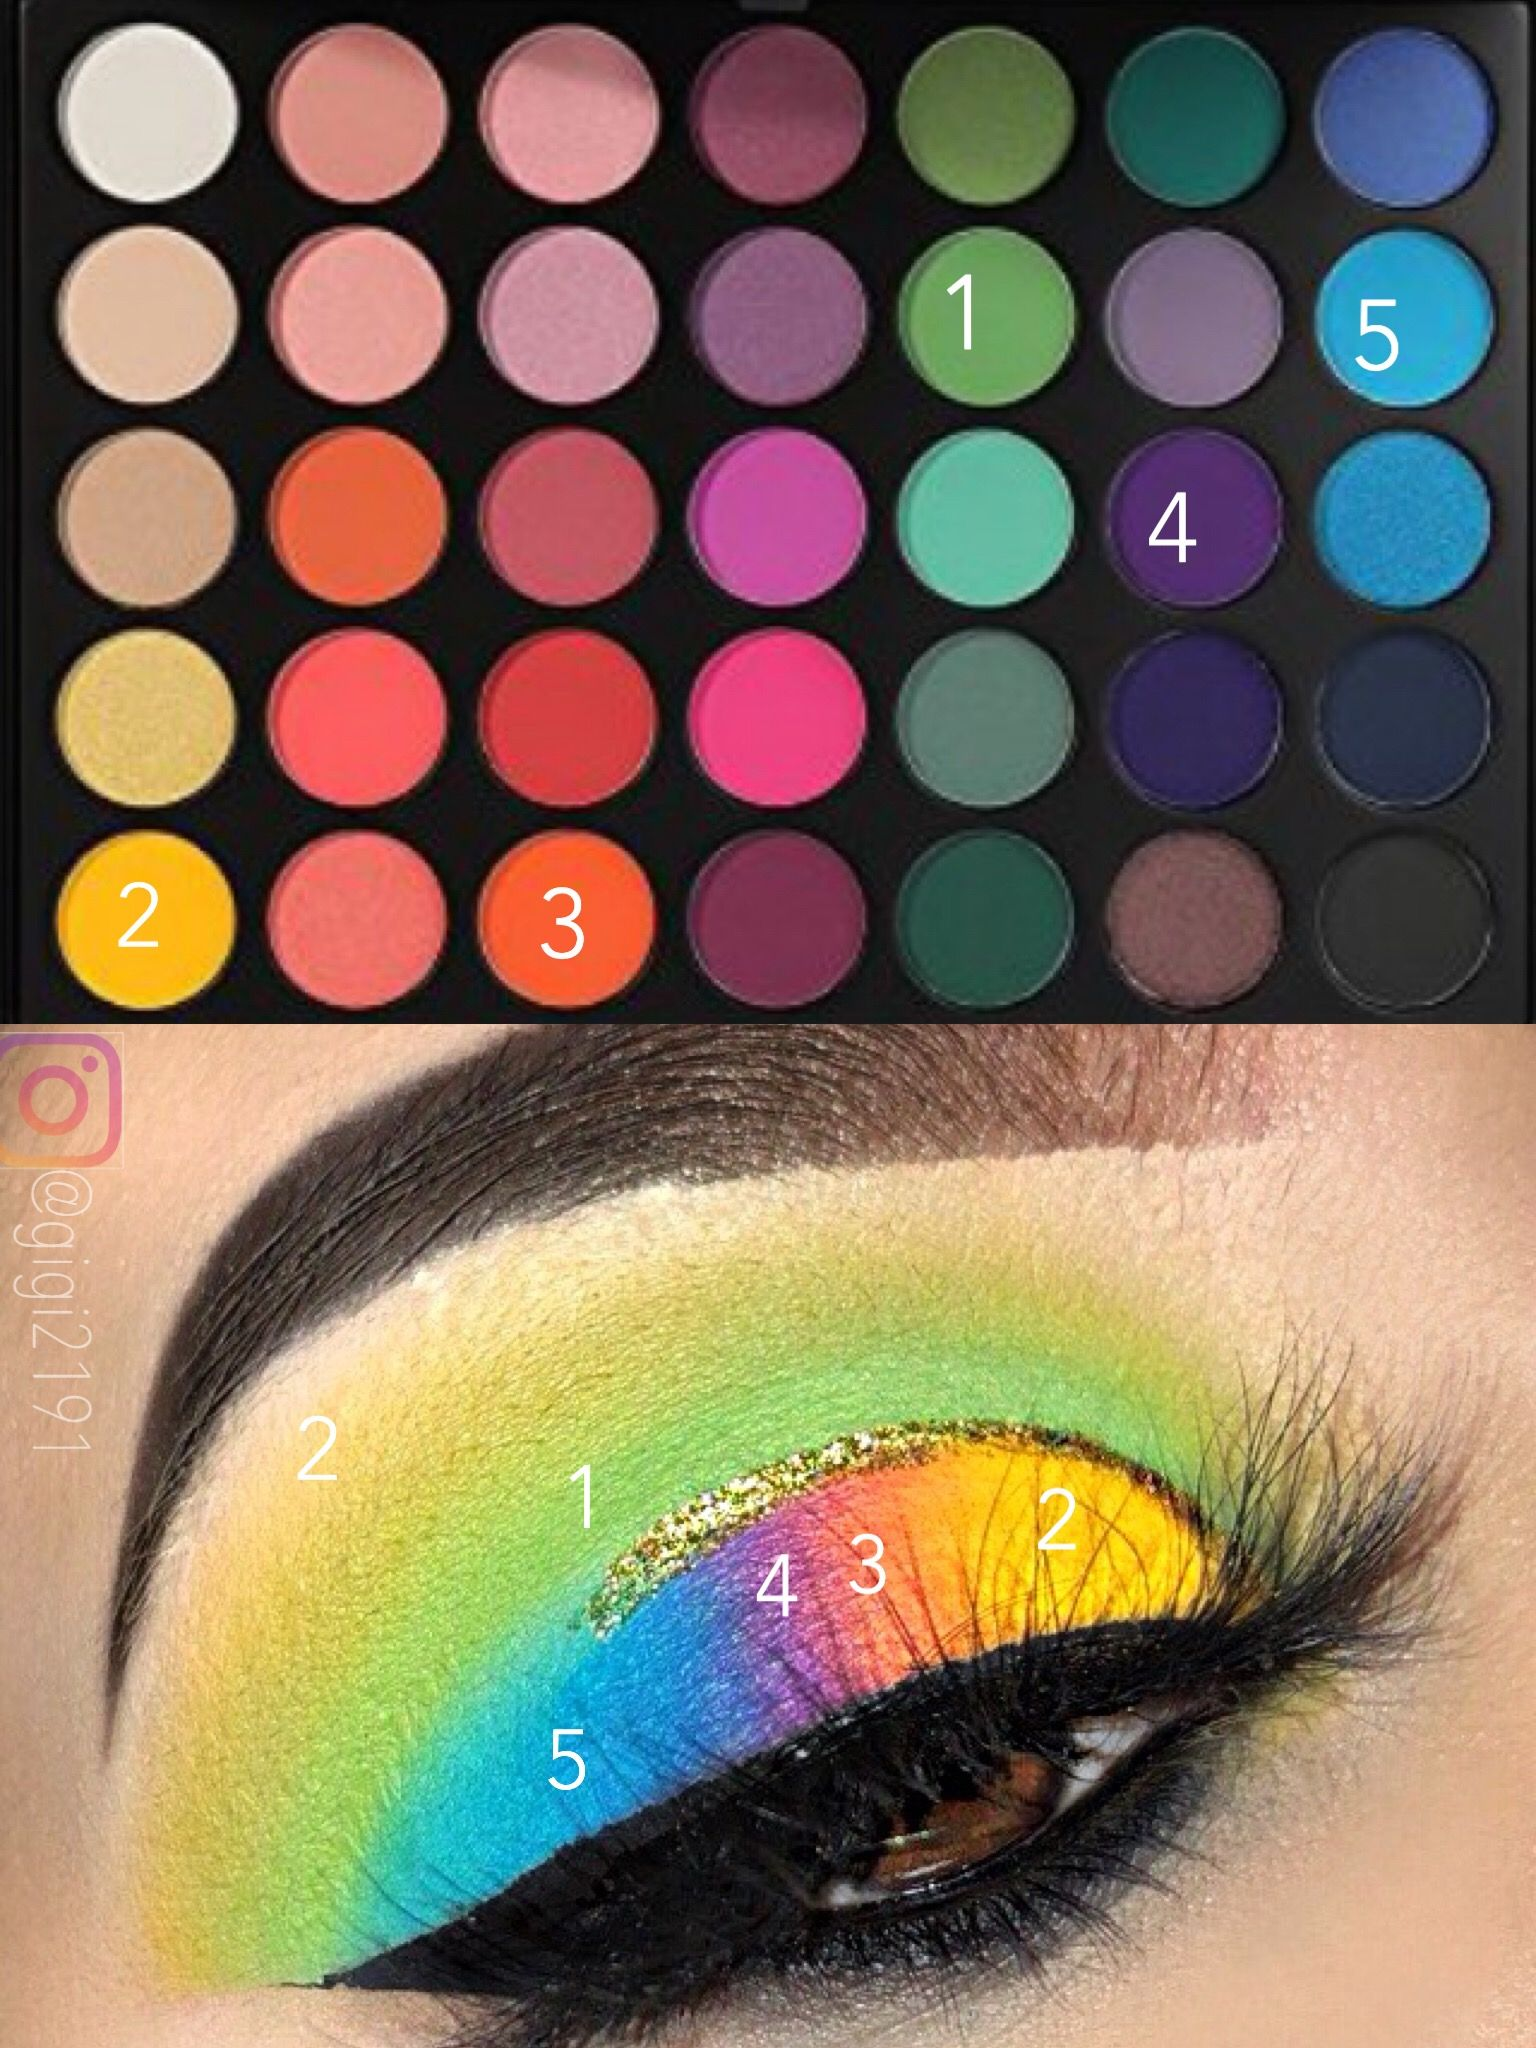 Morphe 35b Eyeshadow Look By Gigi2191 Makeup Morphe Eyeshadow Rave Makeup Explore the spectrum with the morphe 35b color burst artistry palette, a set of 35 bold, bright eyeshadows in a kaleidoscope of colour. pinterest